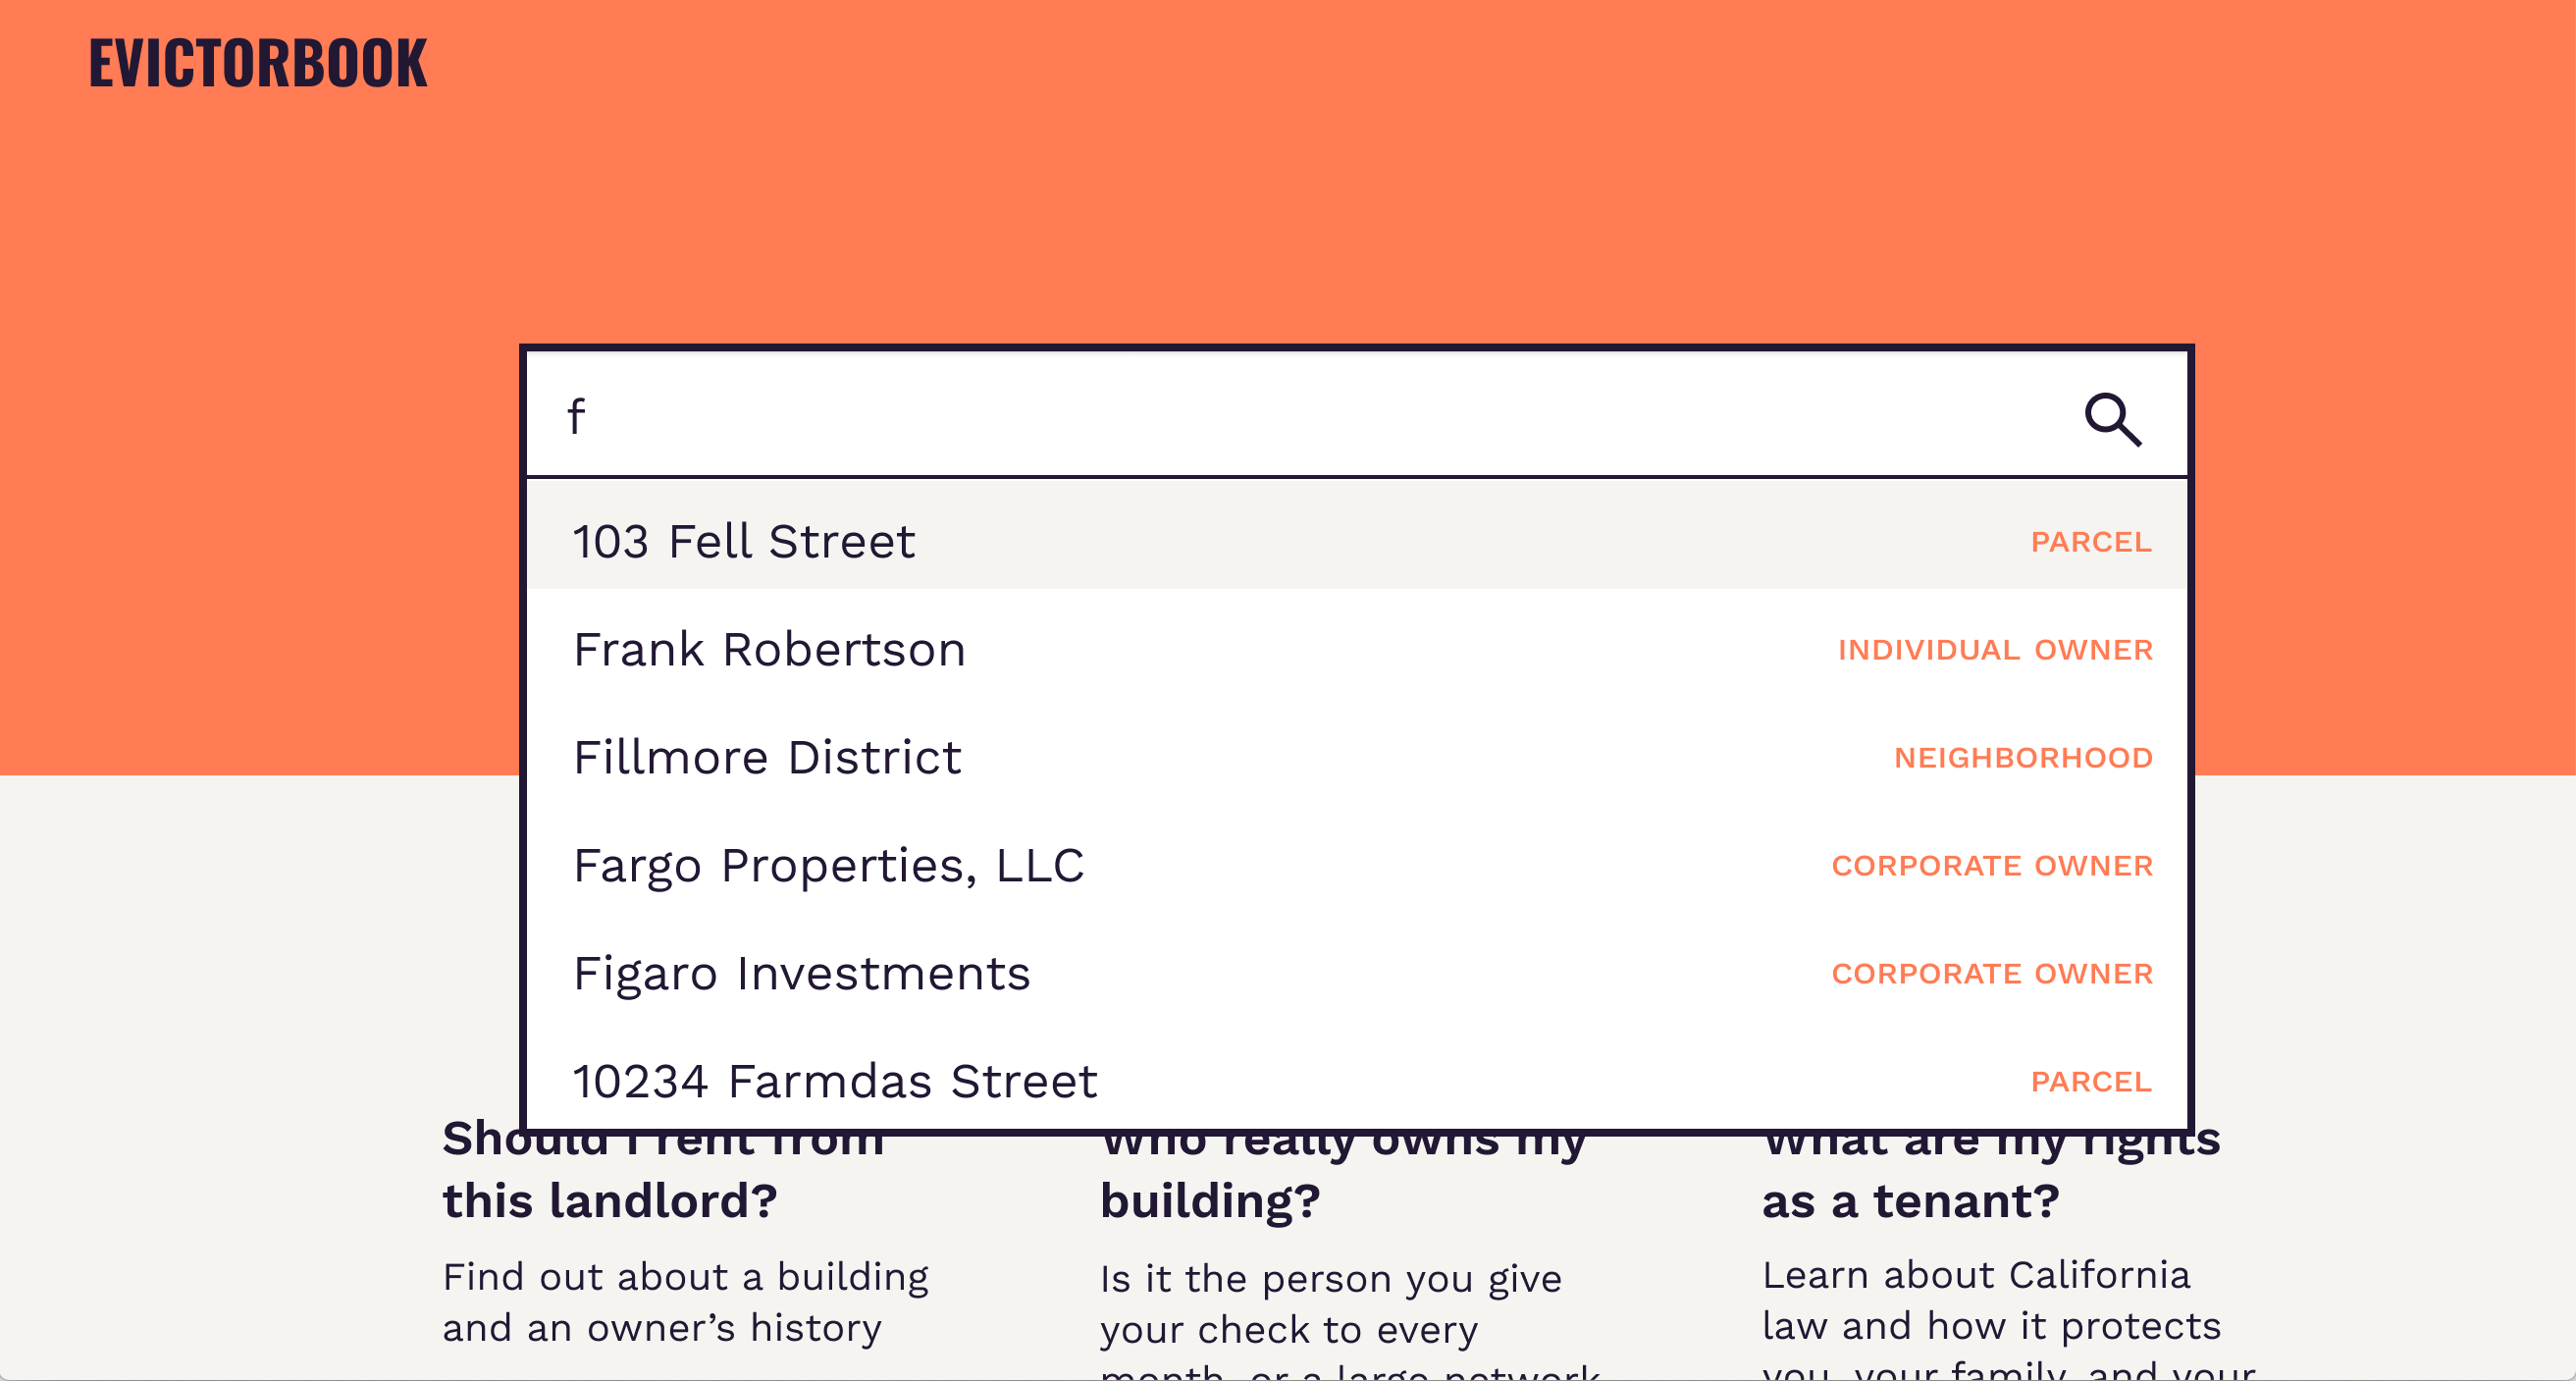 A mockup of Evictorbook showing a webpage with a search dropdown listing different properties in San Francisco